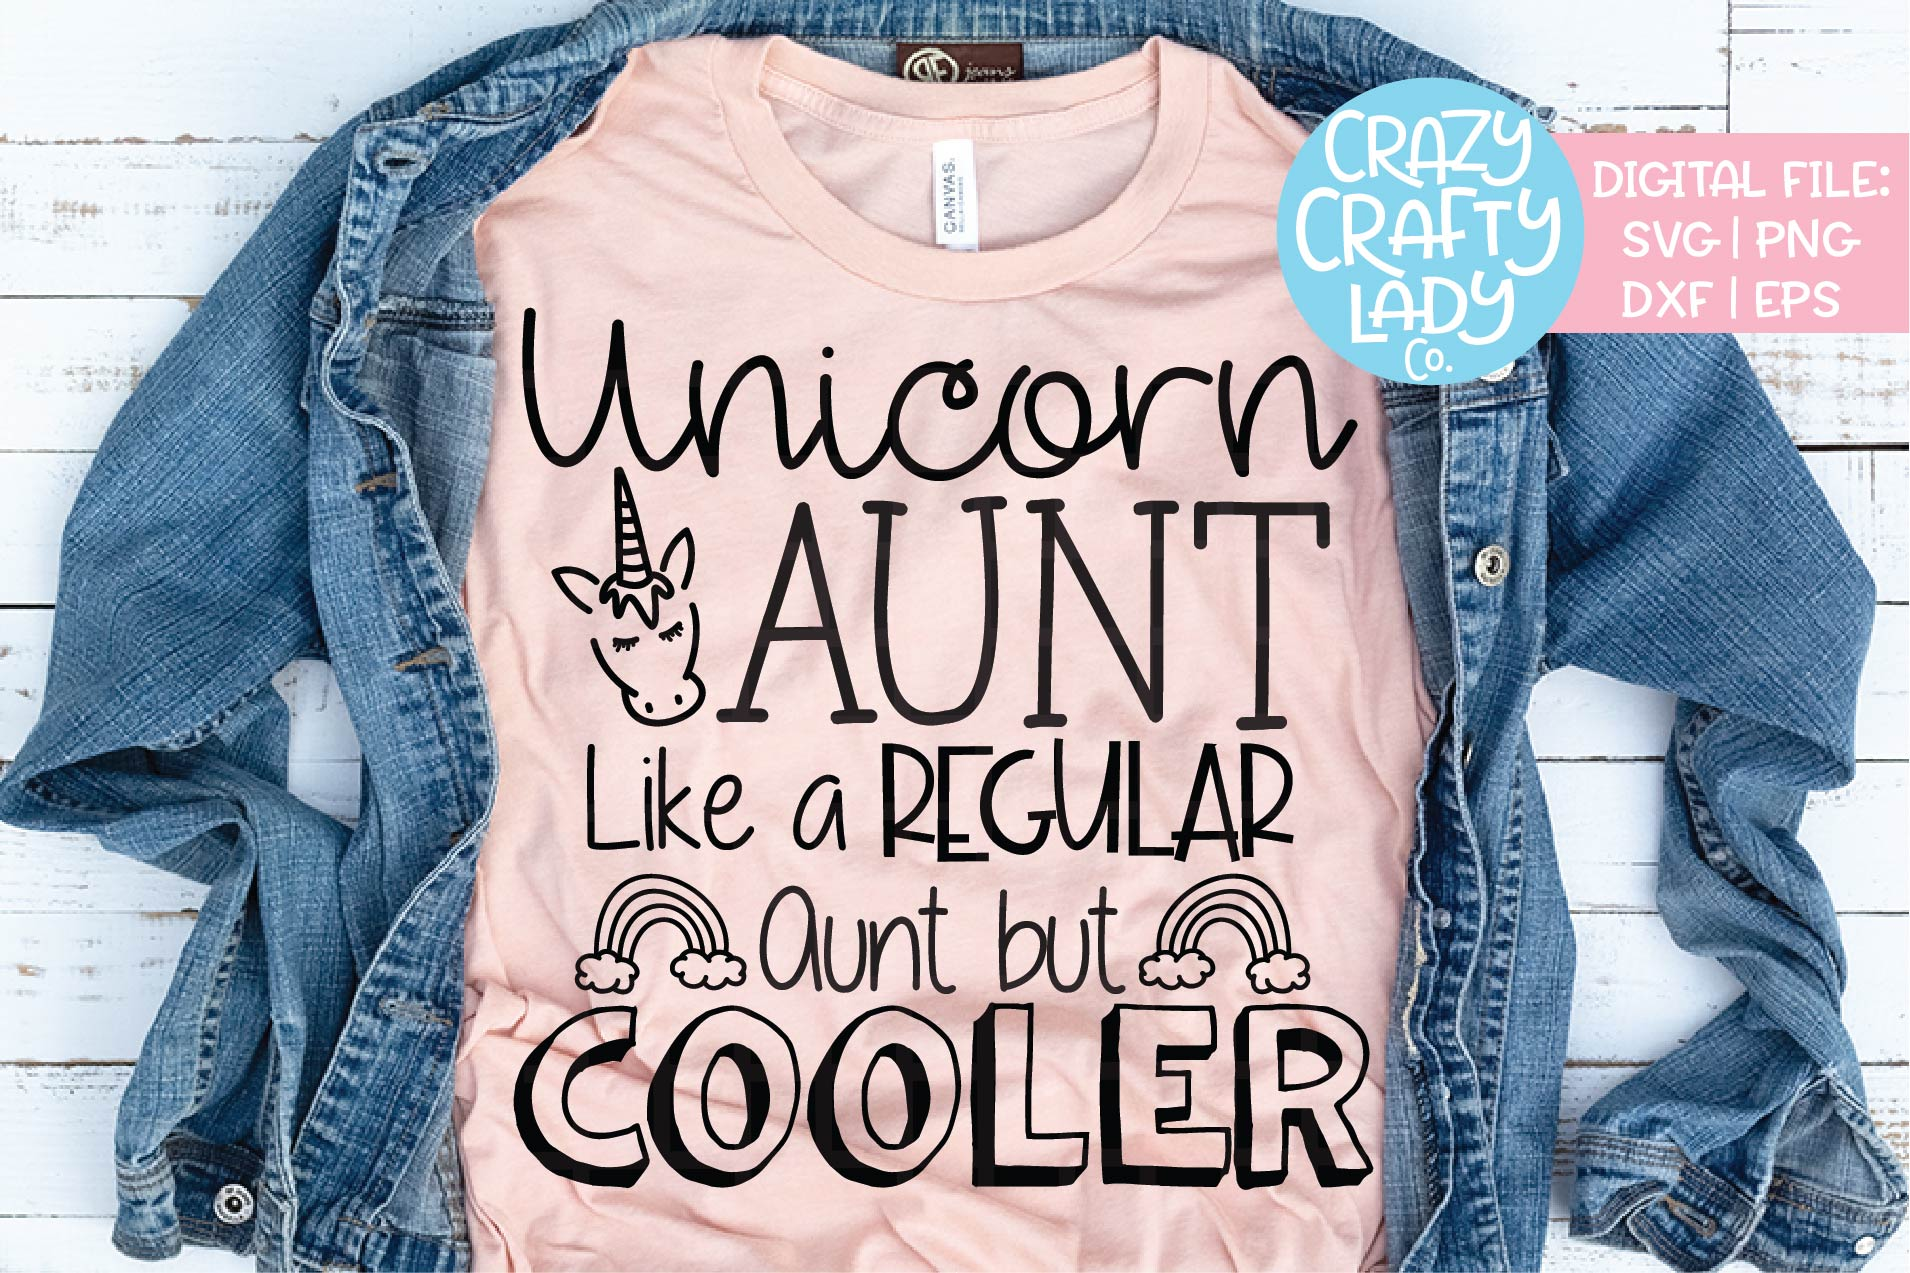 Aunt in jeans clipart clipart images gallery for free.